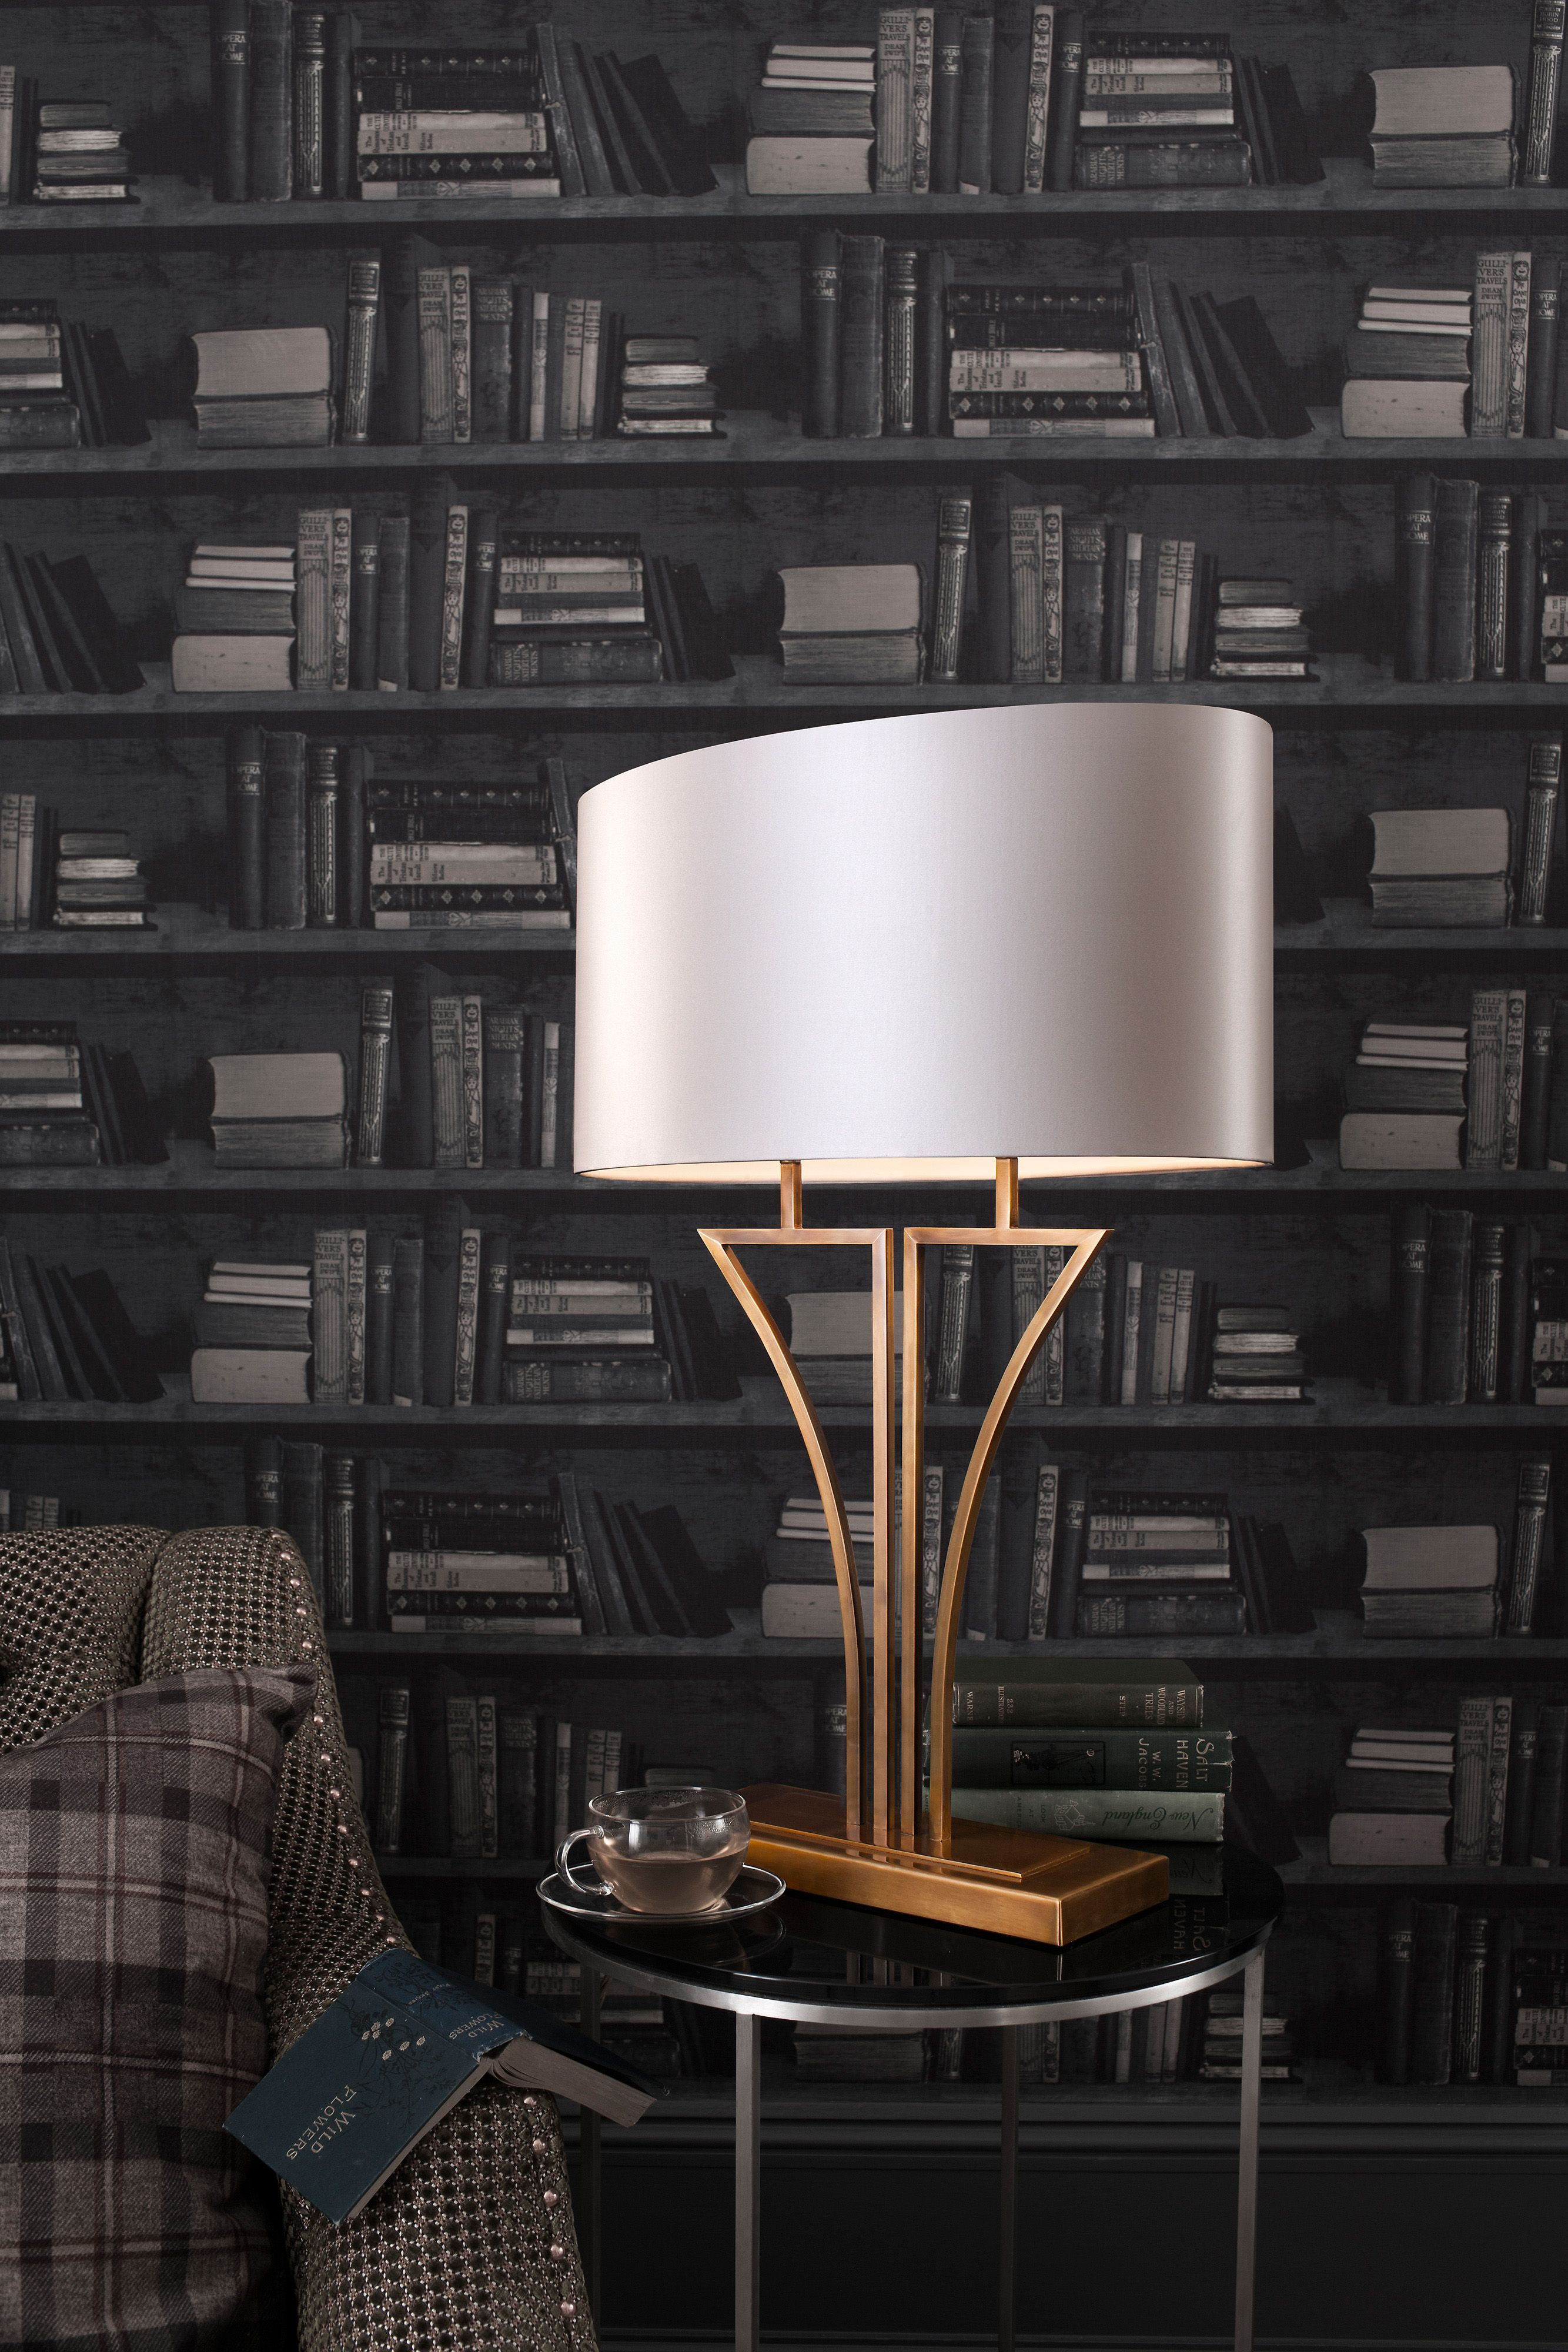 Yves Antique Brass Table L& Strong curves and lines using square section tubing give this Deco inspired form a real visual impact. & Yves Antique Brass Table Lamp Strong curves and lines using square ...